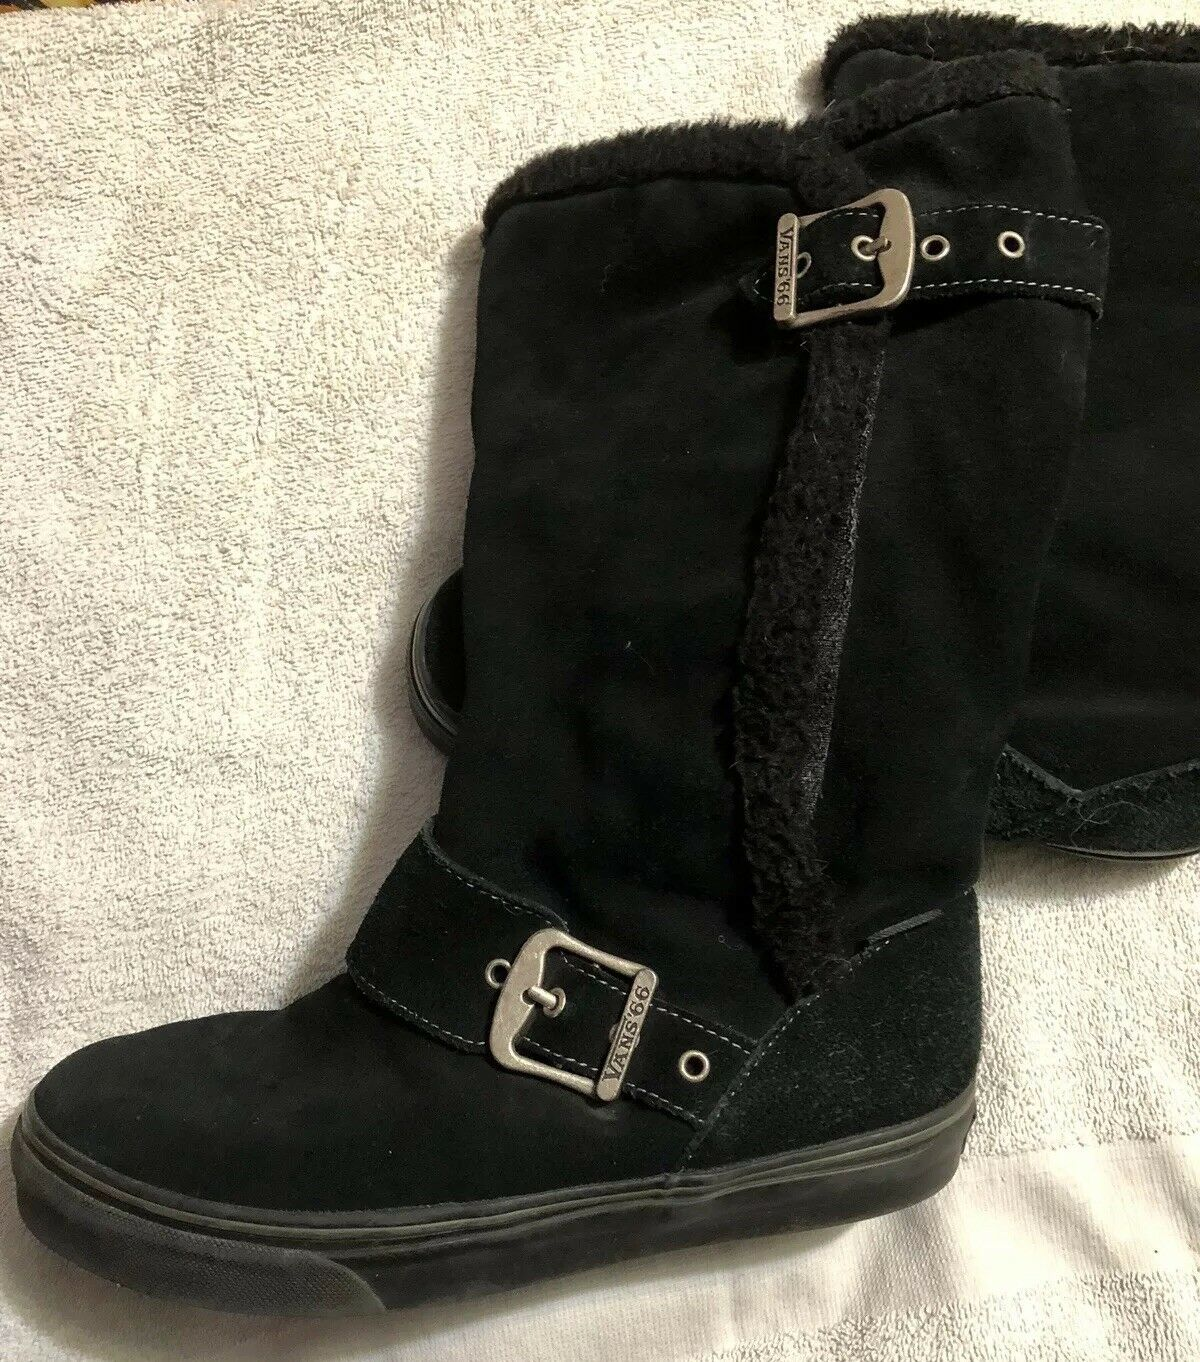 VANS Off the Wall Suede Black Boots With Buckles 7.5